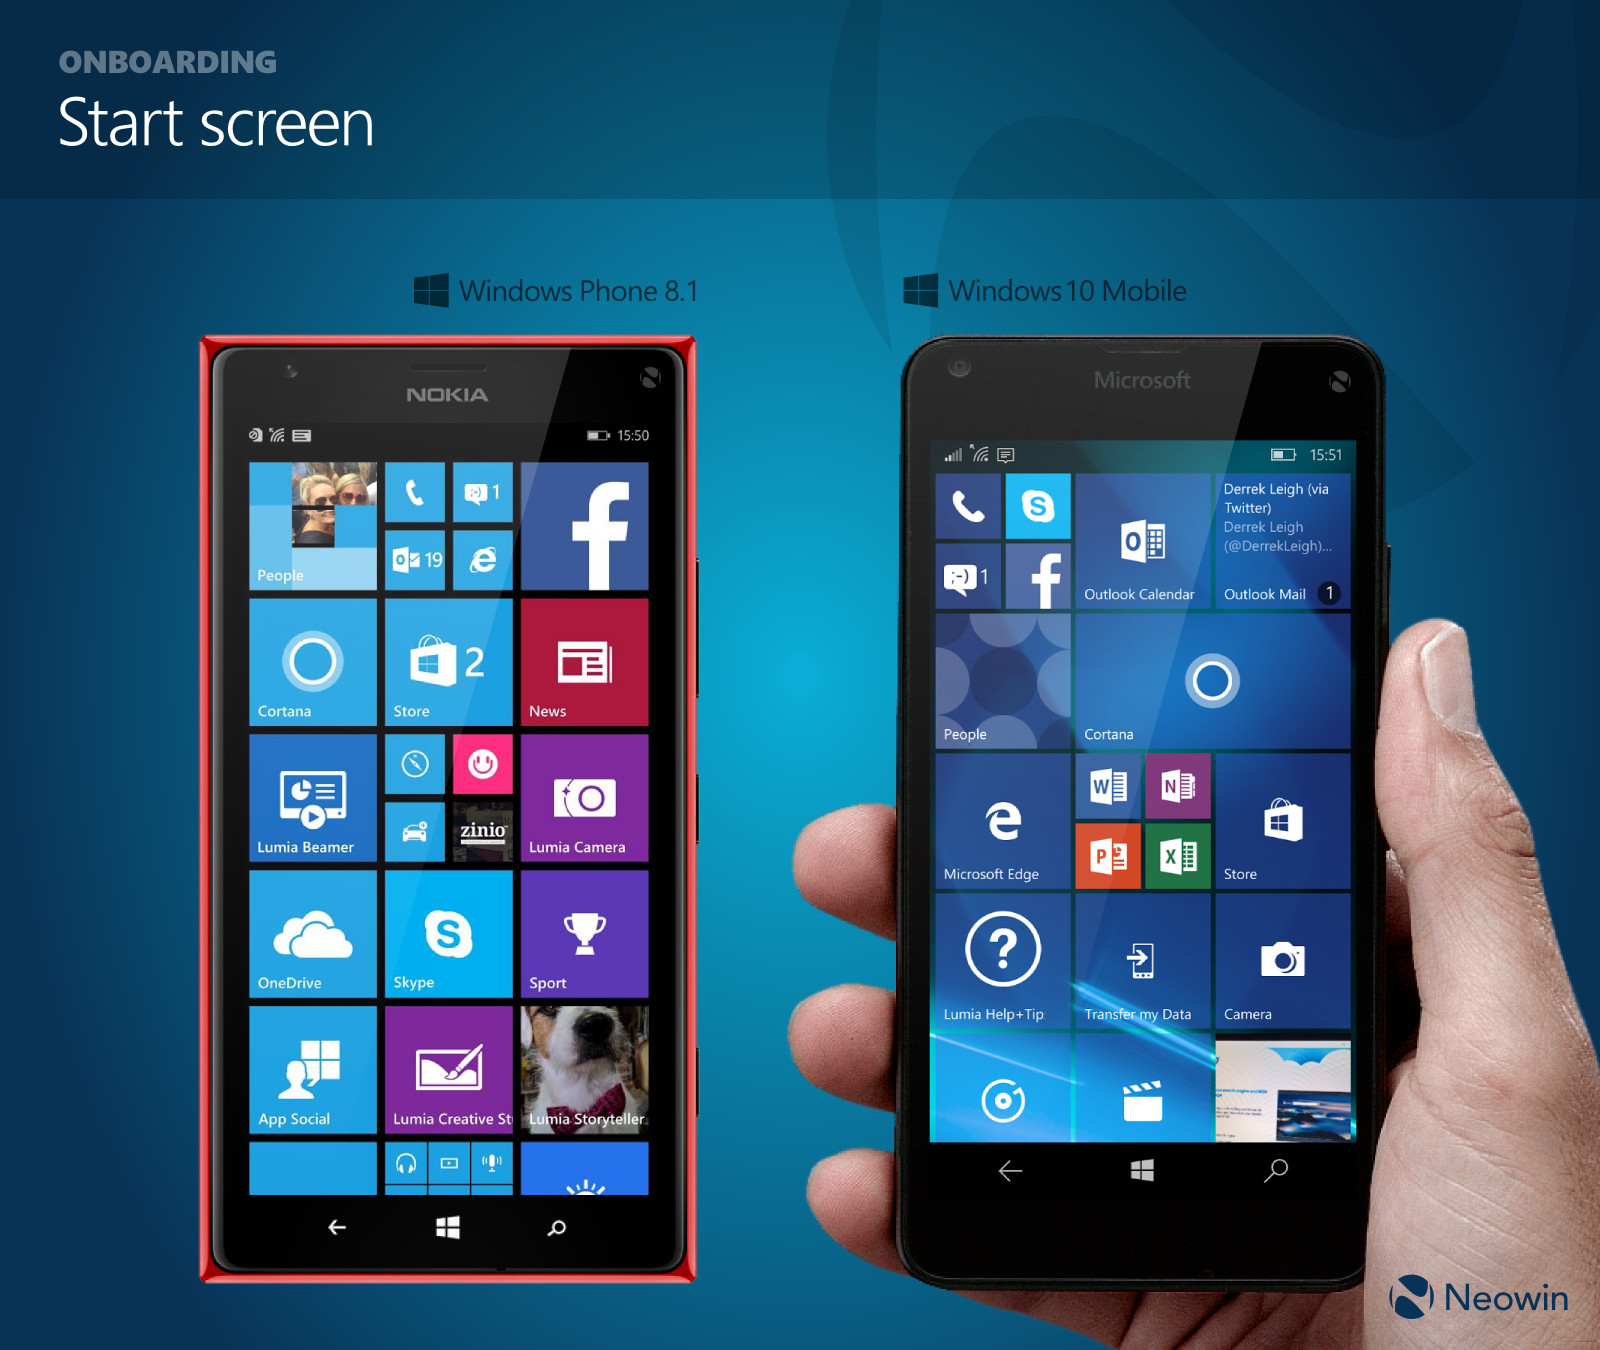 in pictures  comparing windows phone 8 1 and windows 10 mobile  side by side